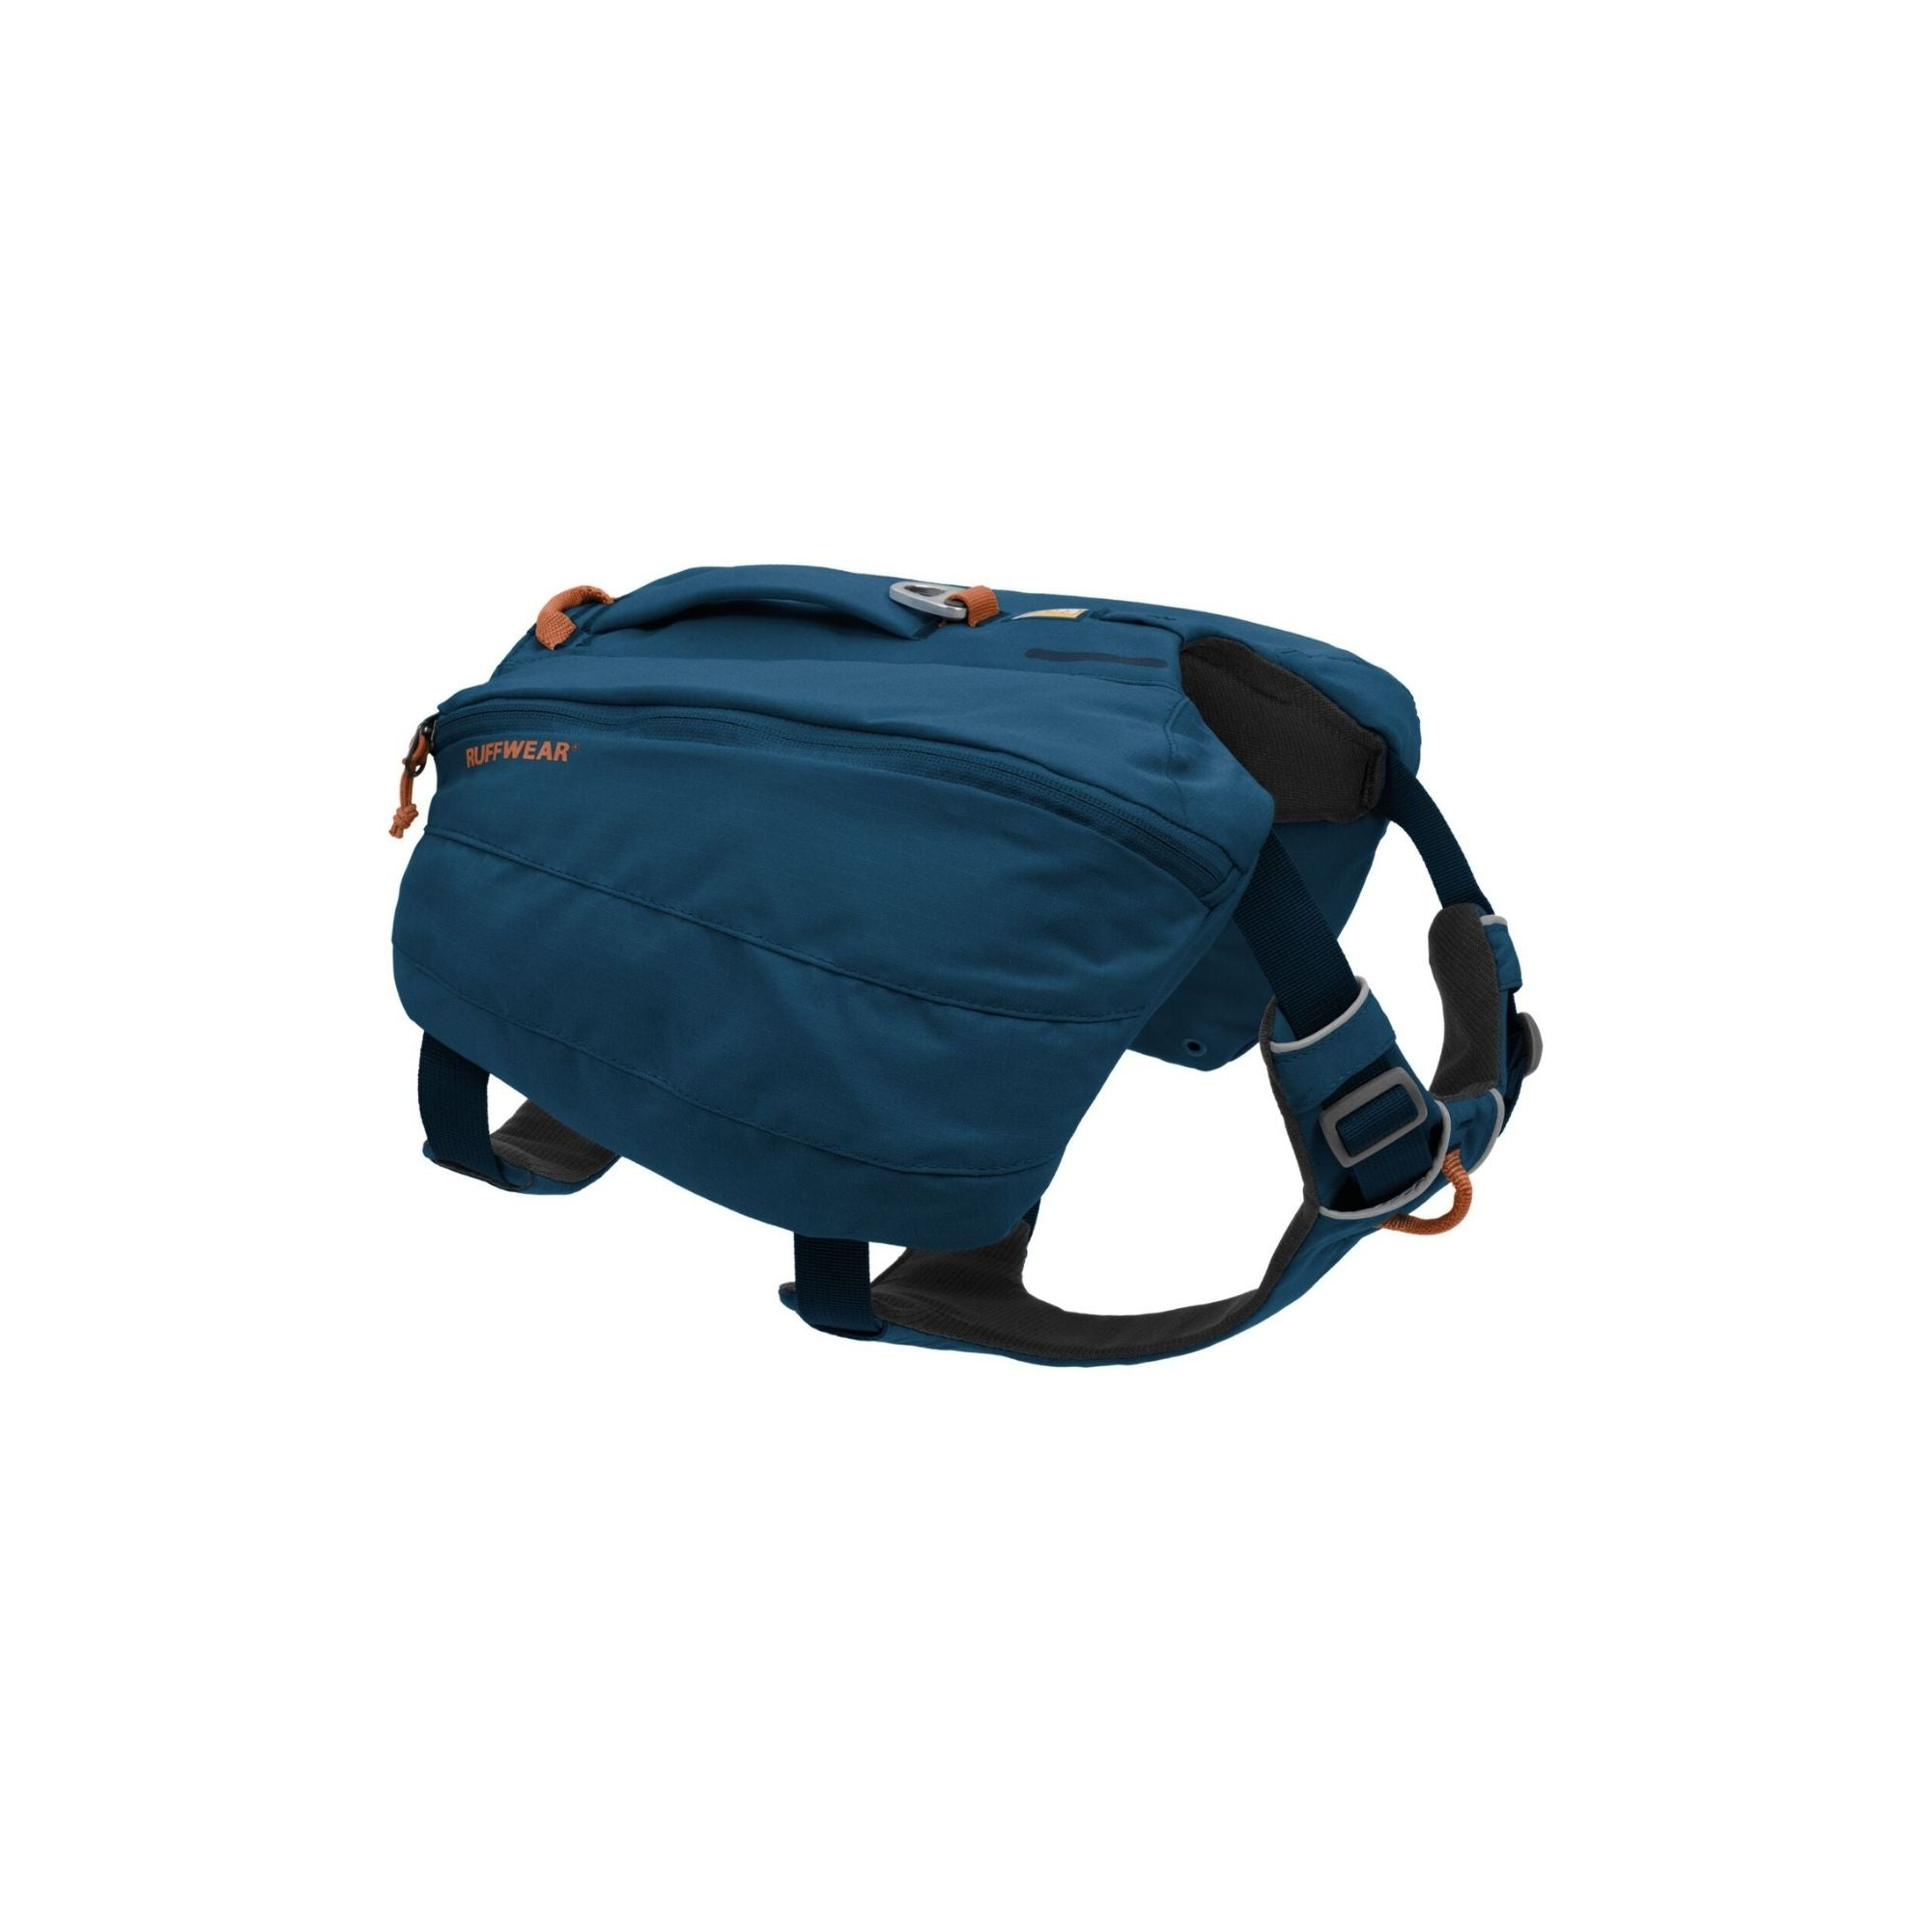 Ruffwear Front Range Day Pack, Dog Backpack | Barks & Bunnies